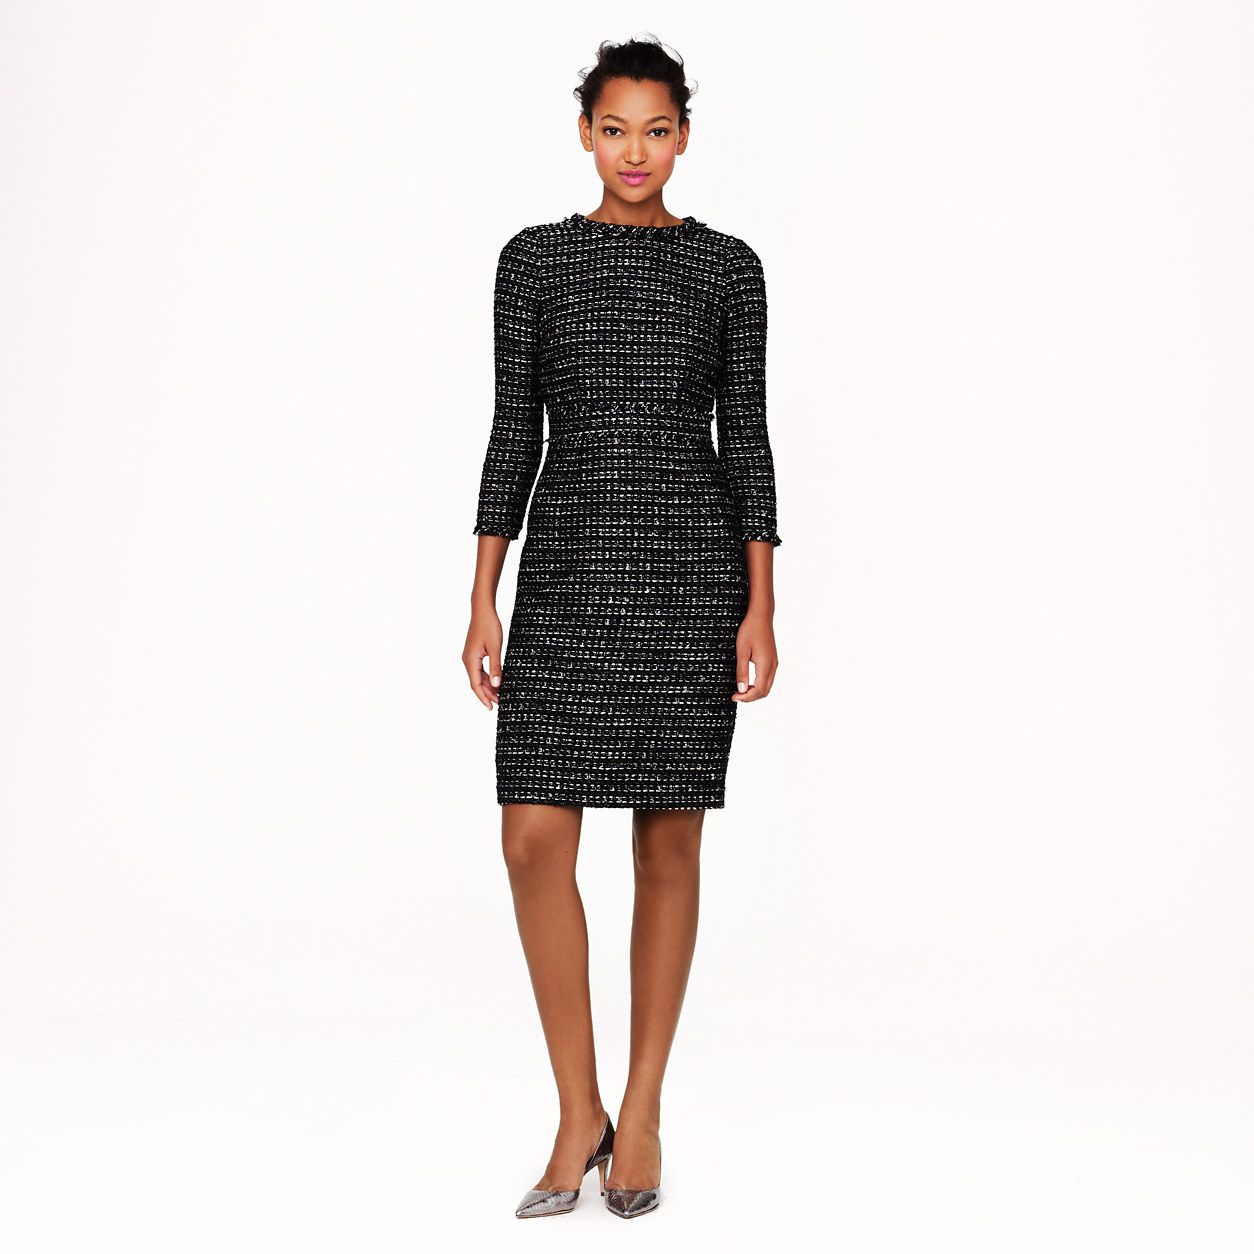 b9cf5037a9c Collection black tweed dress - dresses - Women s collection - J.Crew ...